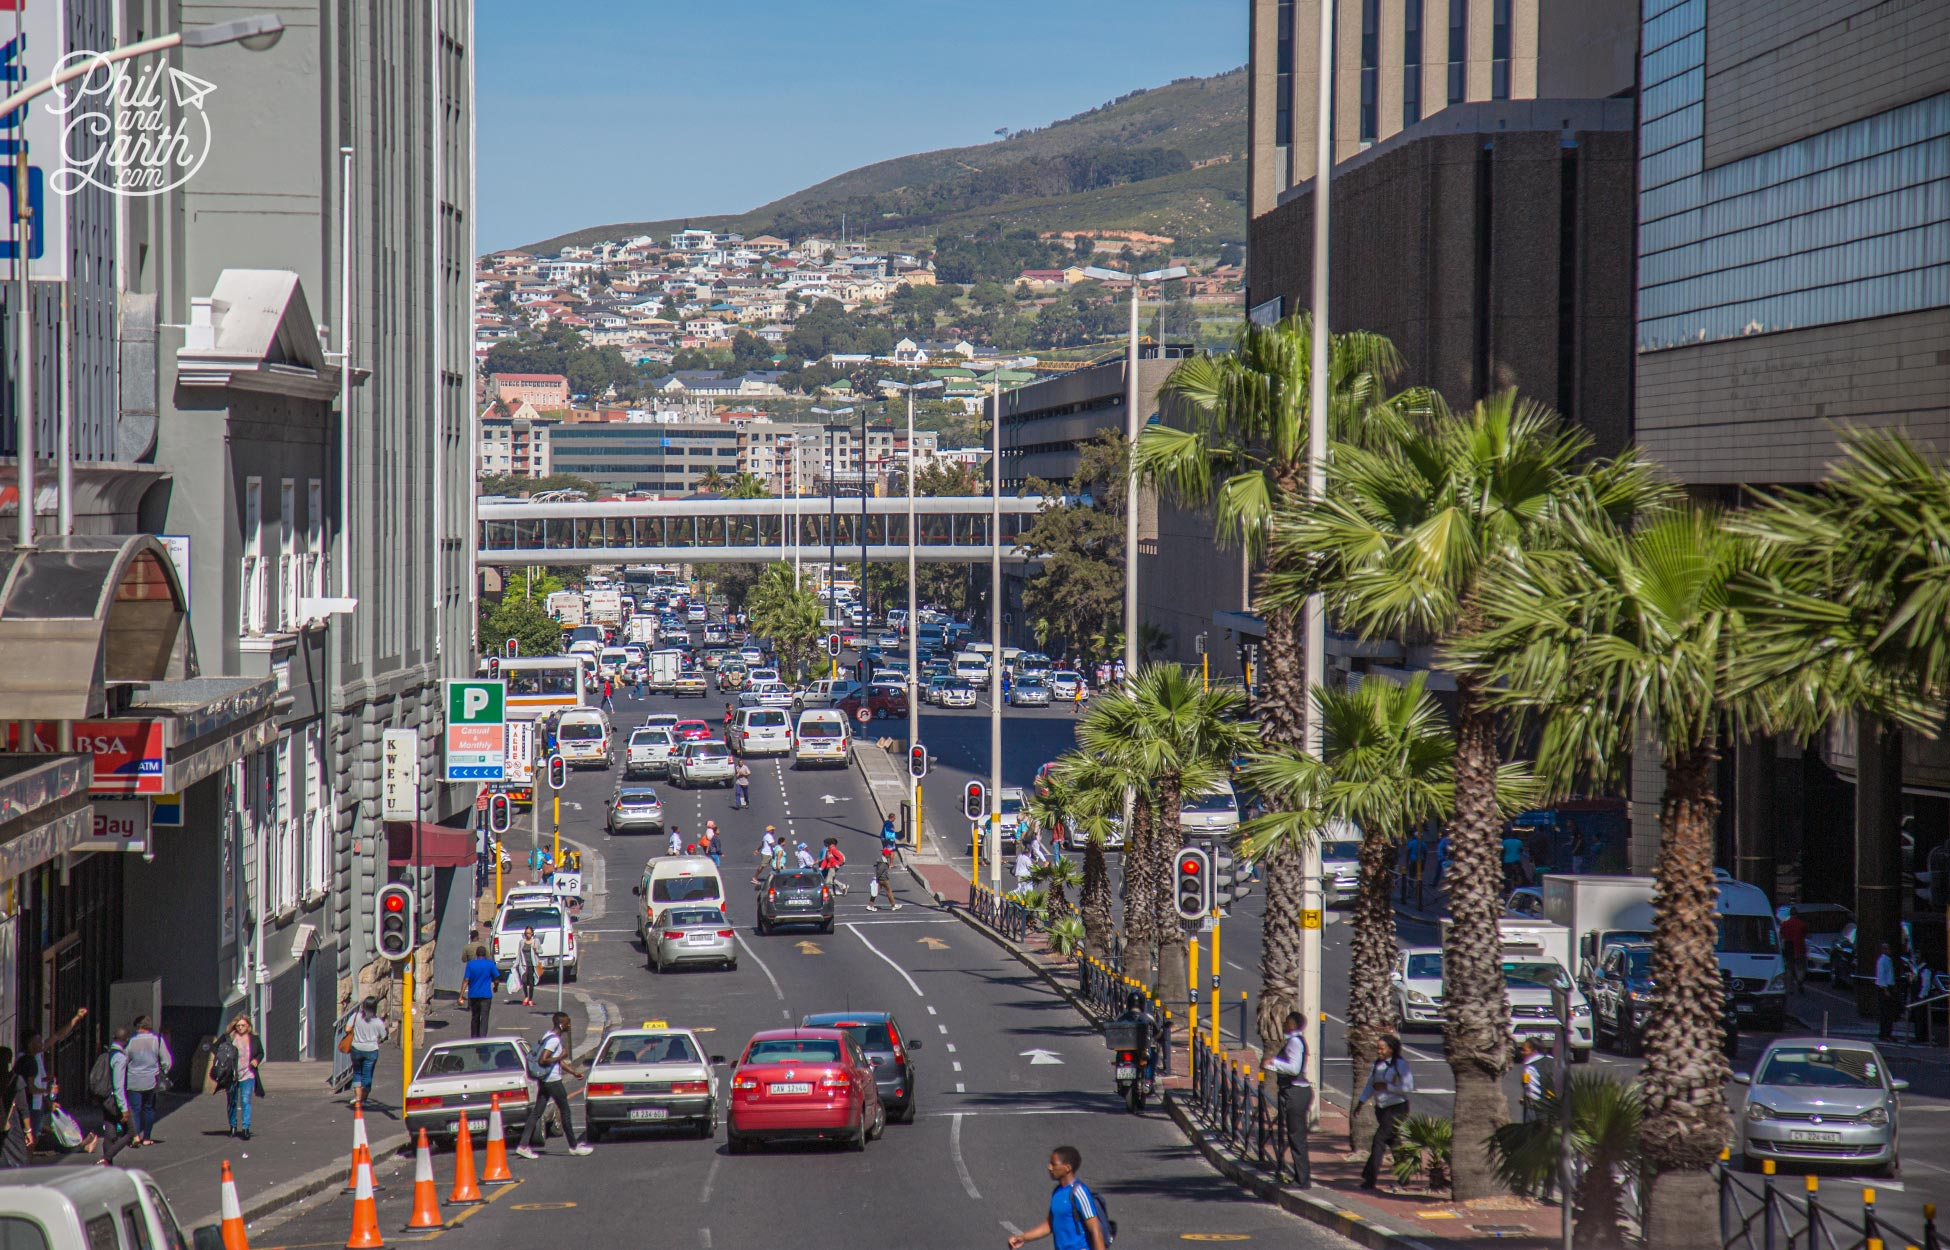 Cape Town's urban sprawl reminded us of Los Angeles